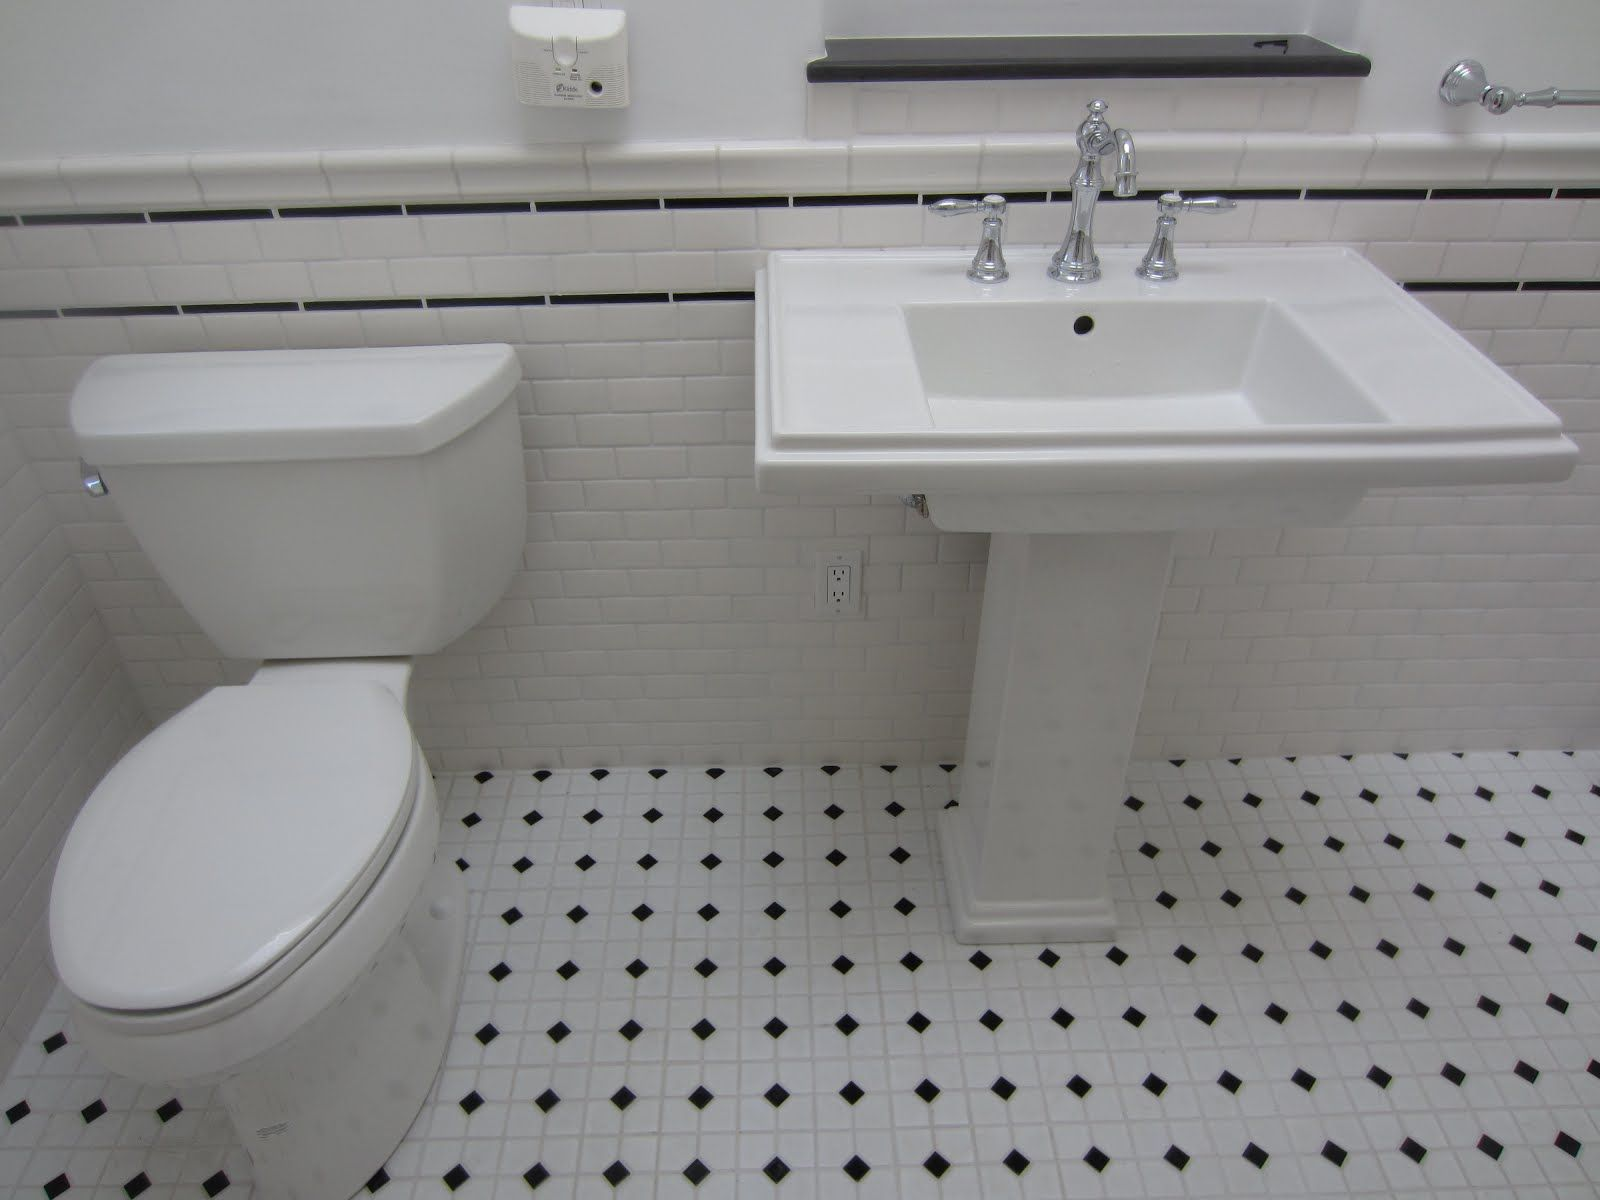 Black And White Retro Bathrooms san diego roofer and general contractor: vintage subway tile